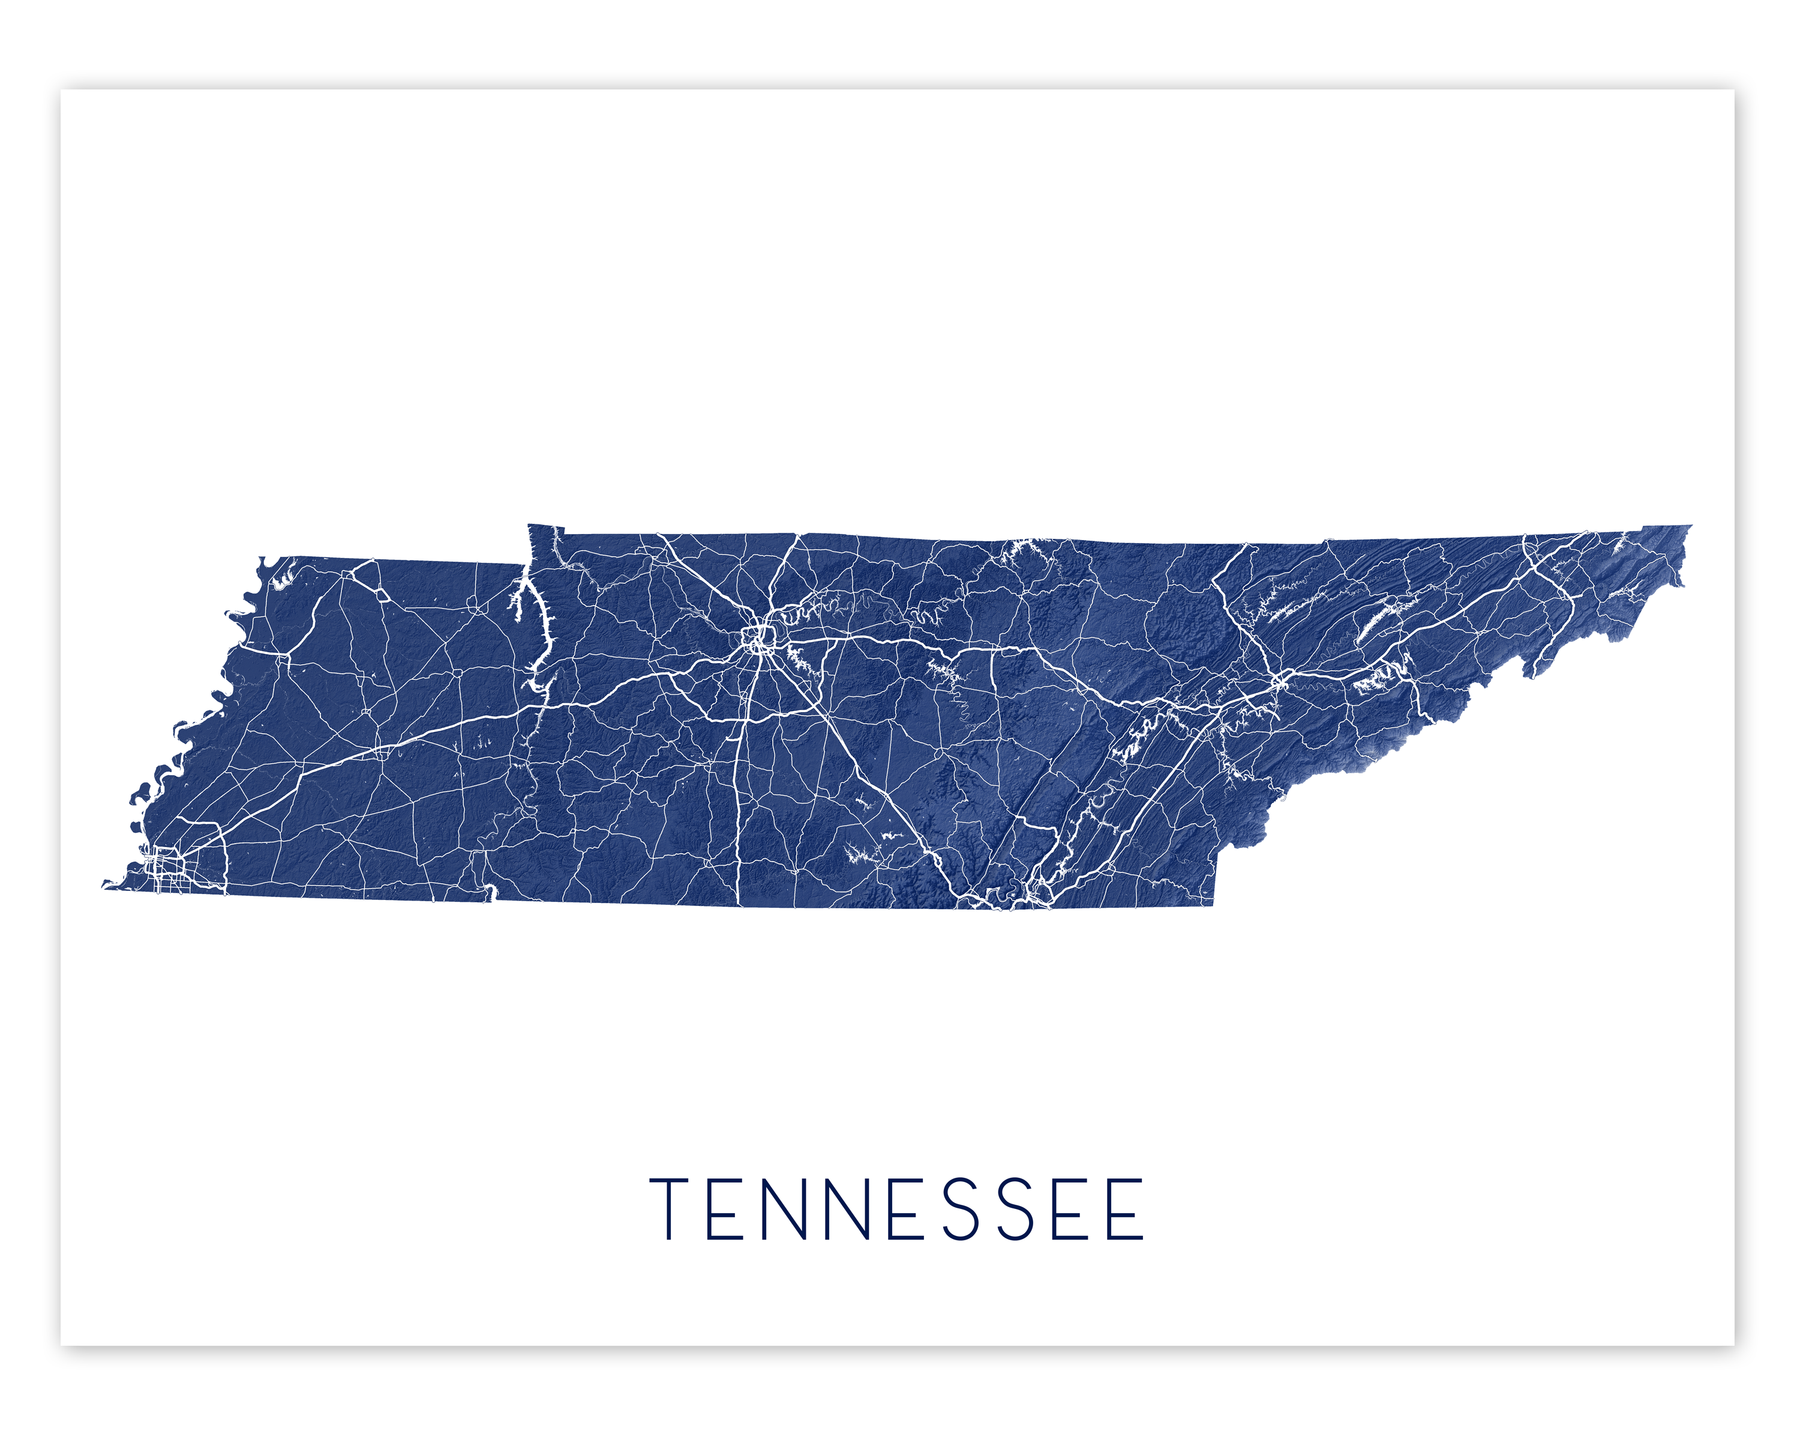 Tennessee state map print in Midnight by Maps As Art.